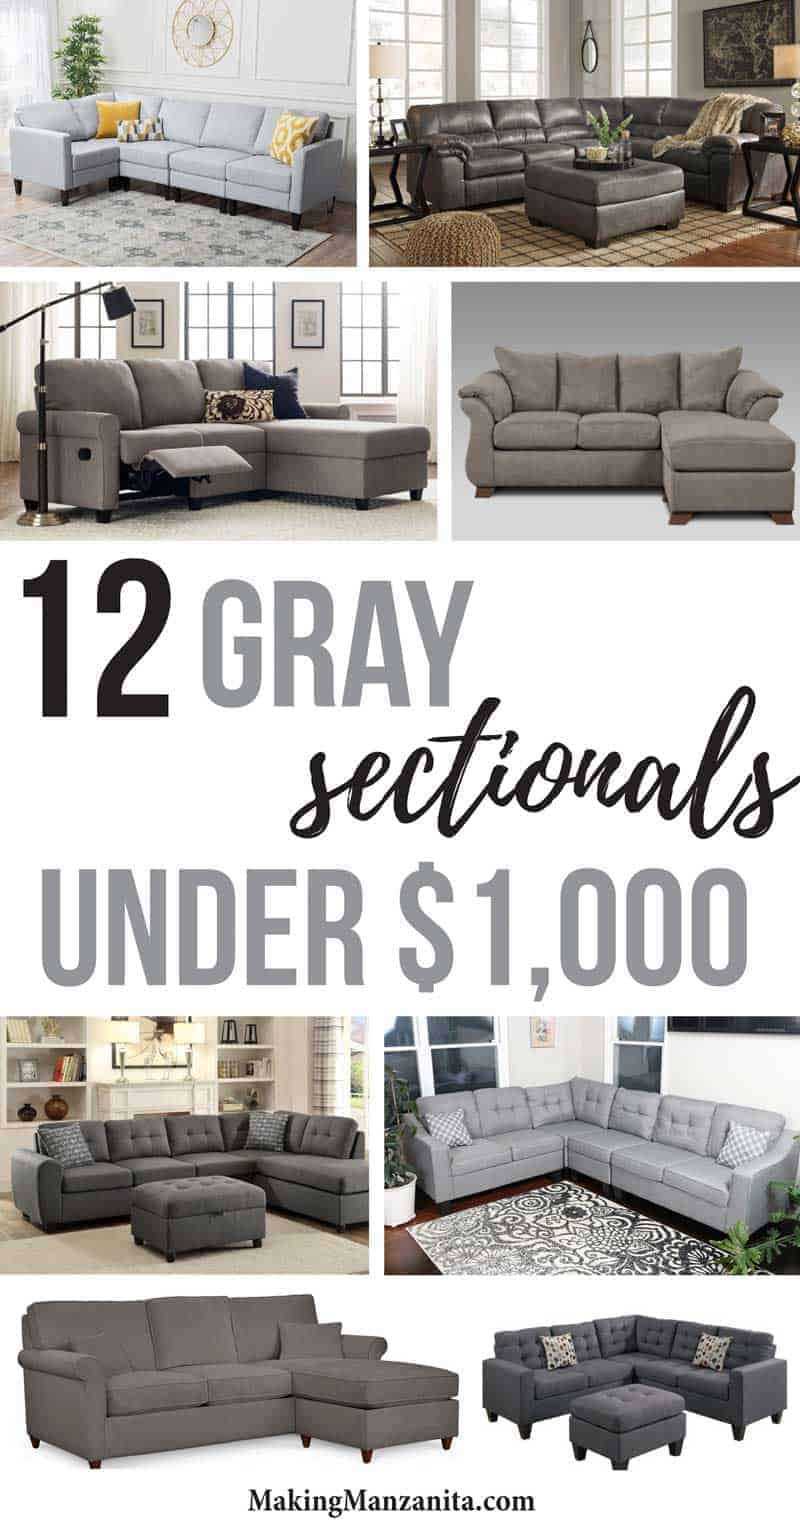 a collage of various grey sectionals ...with a text overlay that says... 12 grey sectionals under $1000